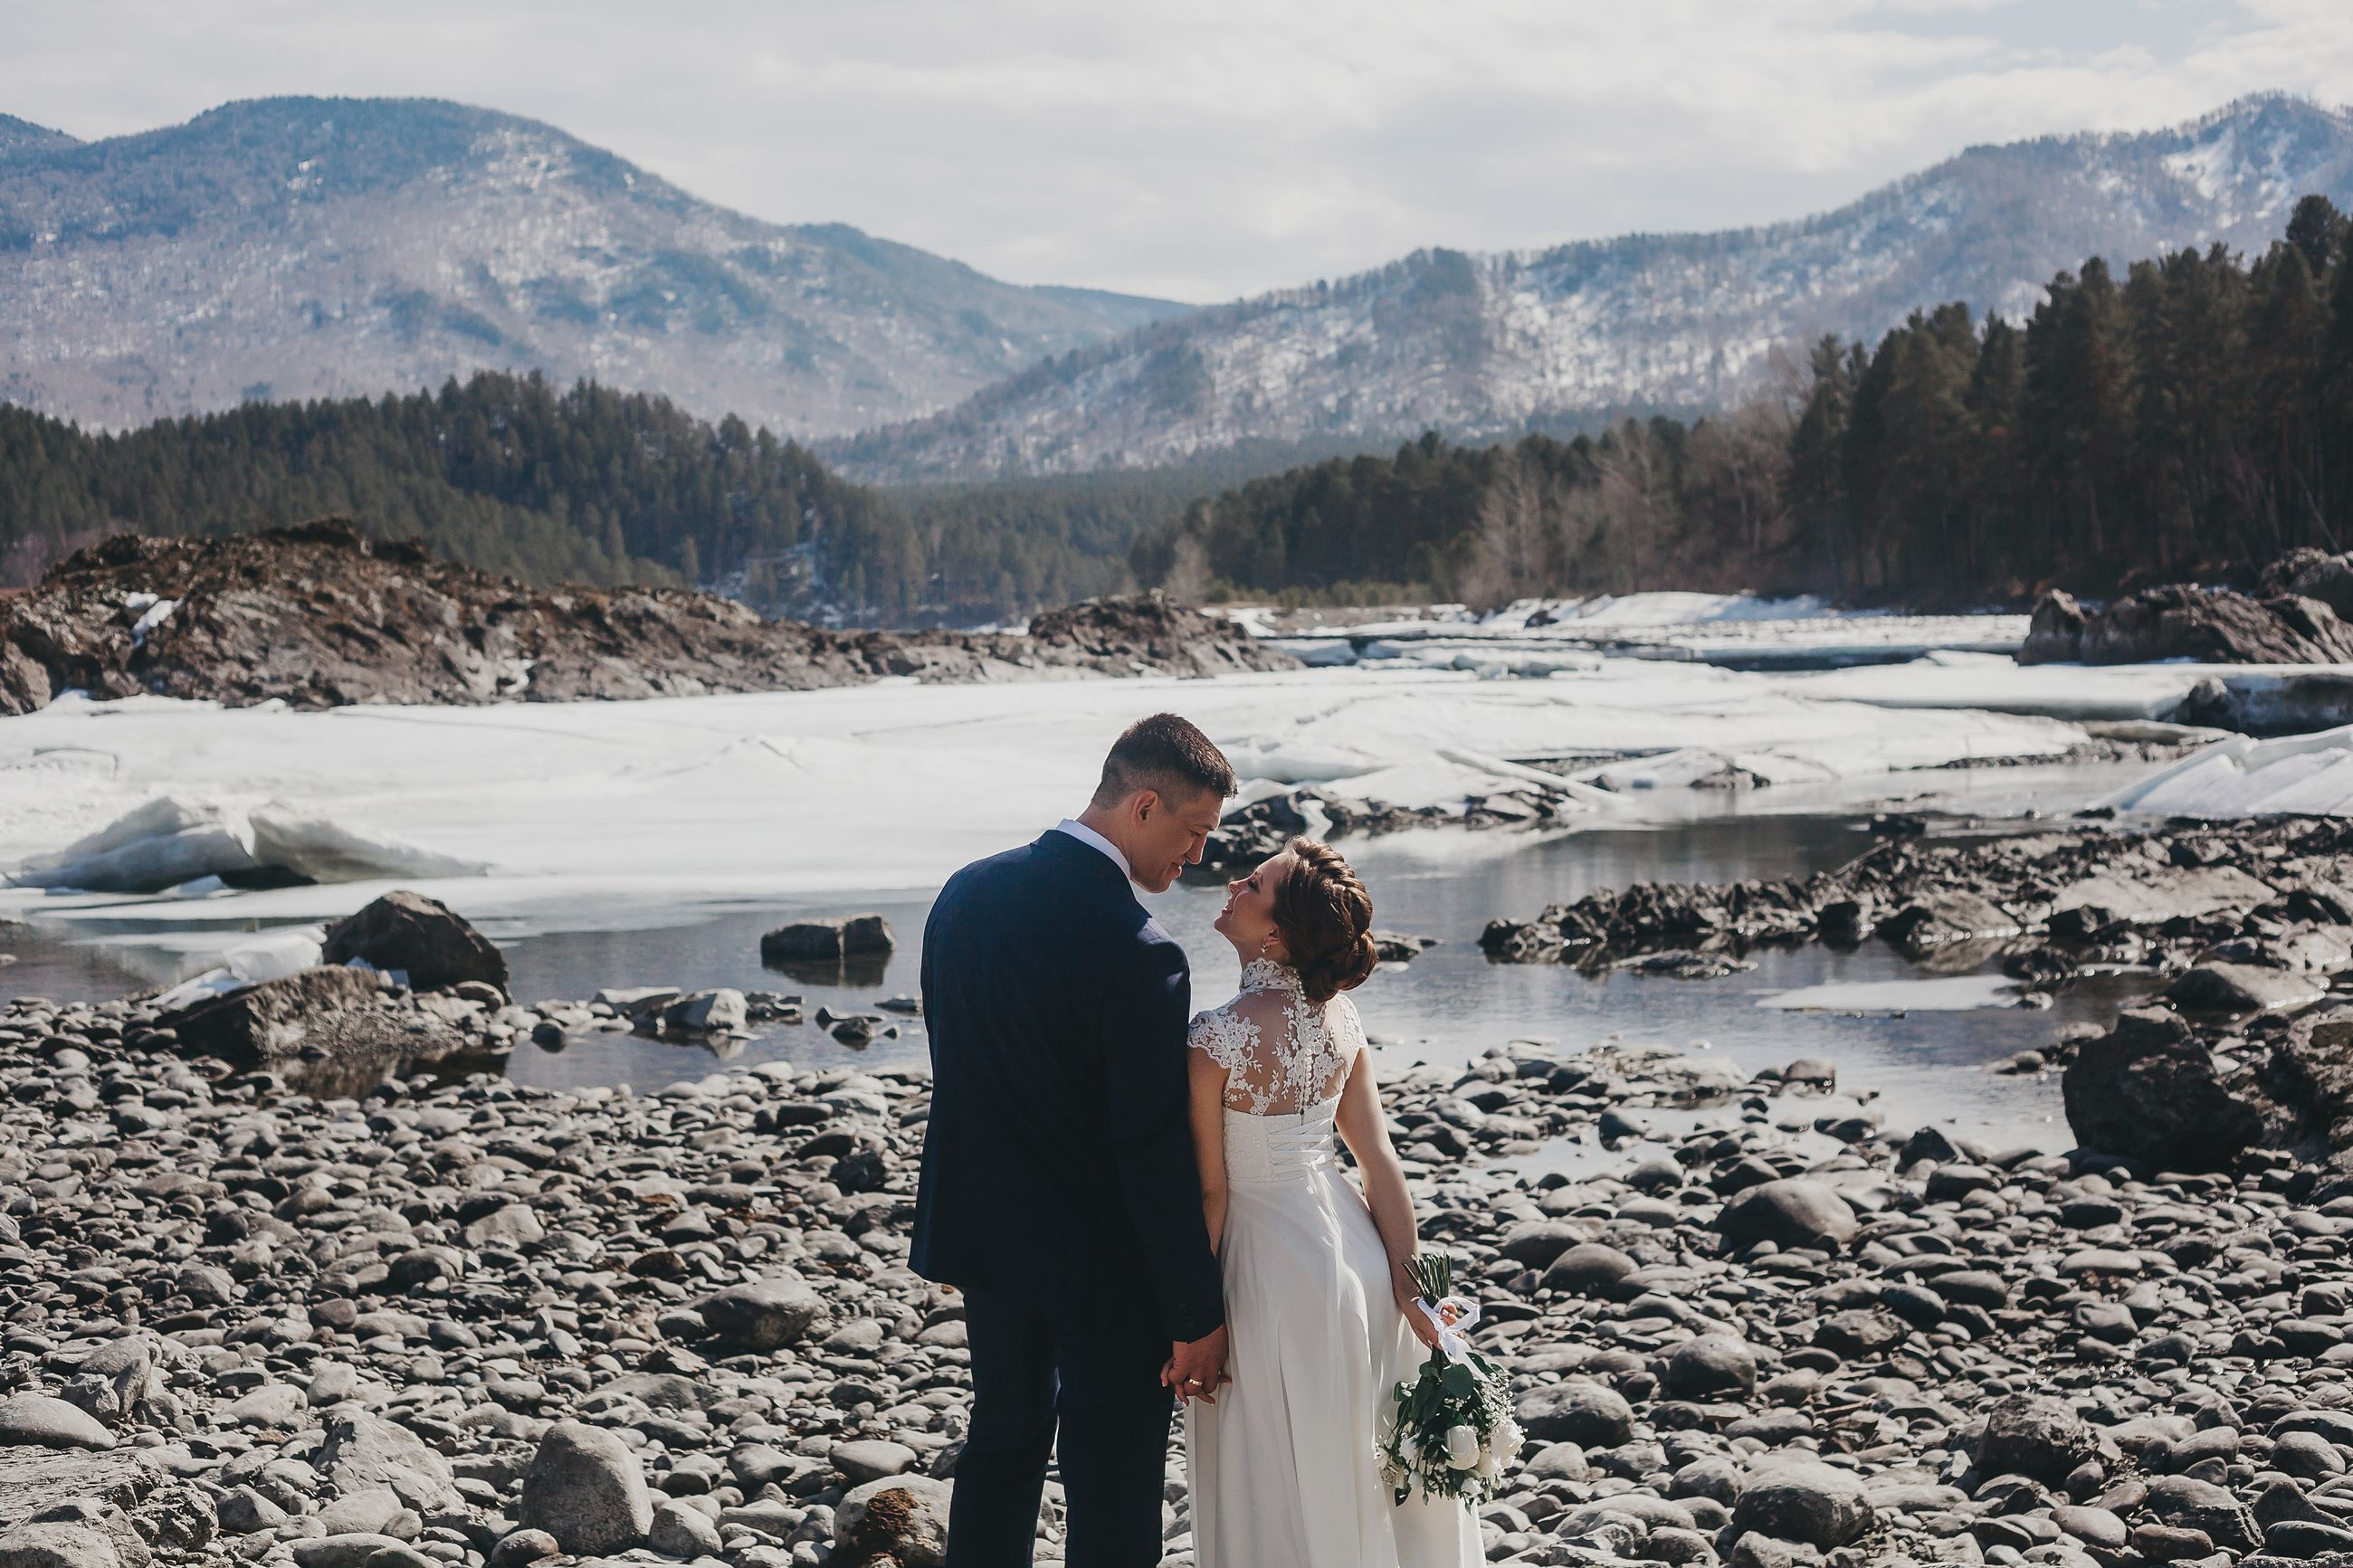 snow, cold temperature, real people, winter, two people, men, couple - relationship, women, love, togetherness, mountain, beauty in nature, standing, scenics - nature, nature, adult, bonding, non-urban scene, wedding, positive emotion, outdoors